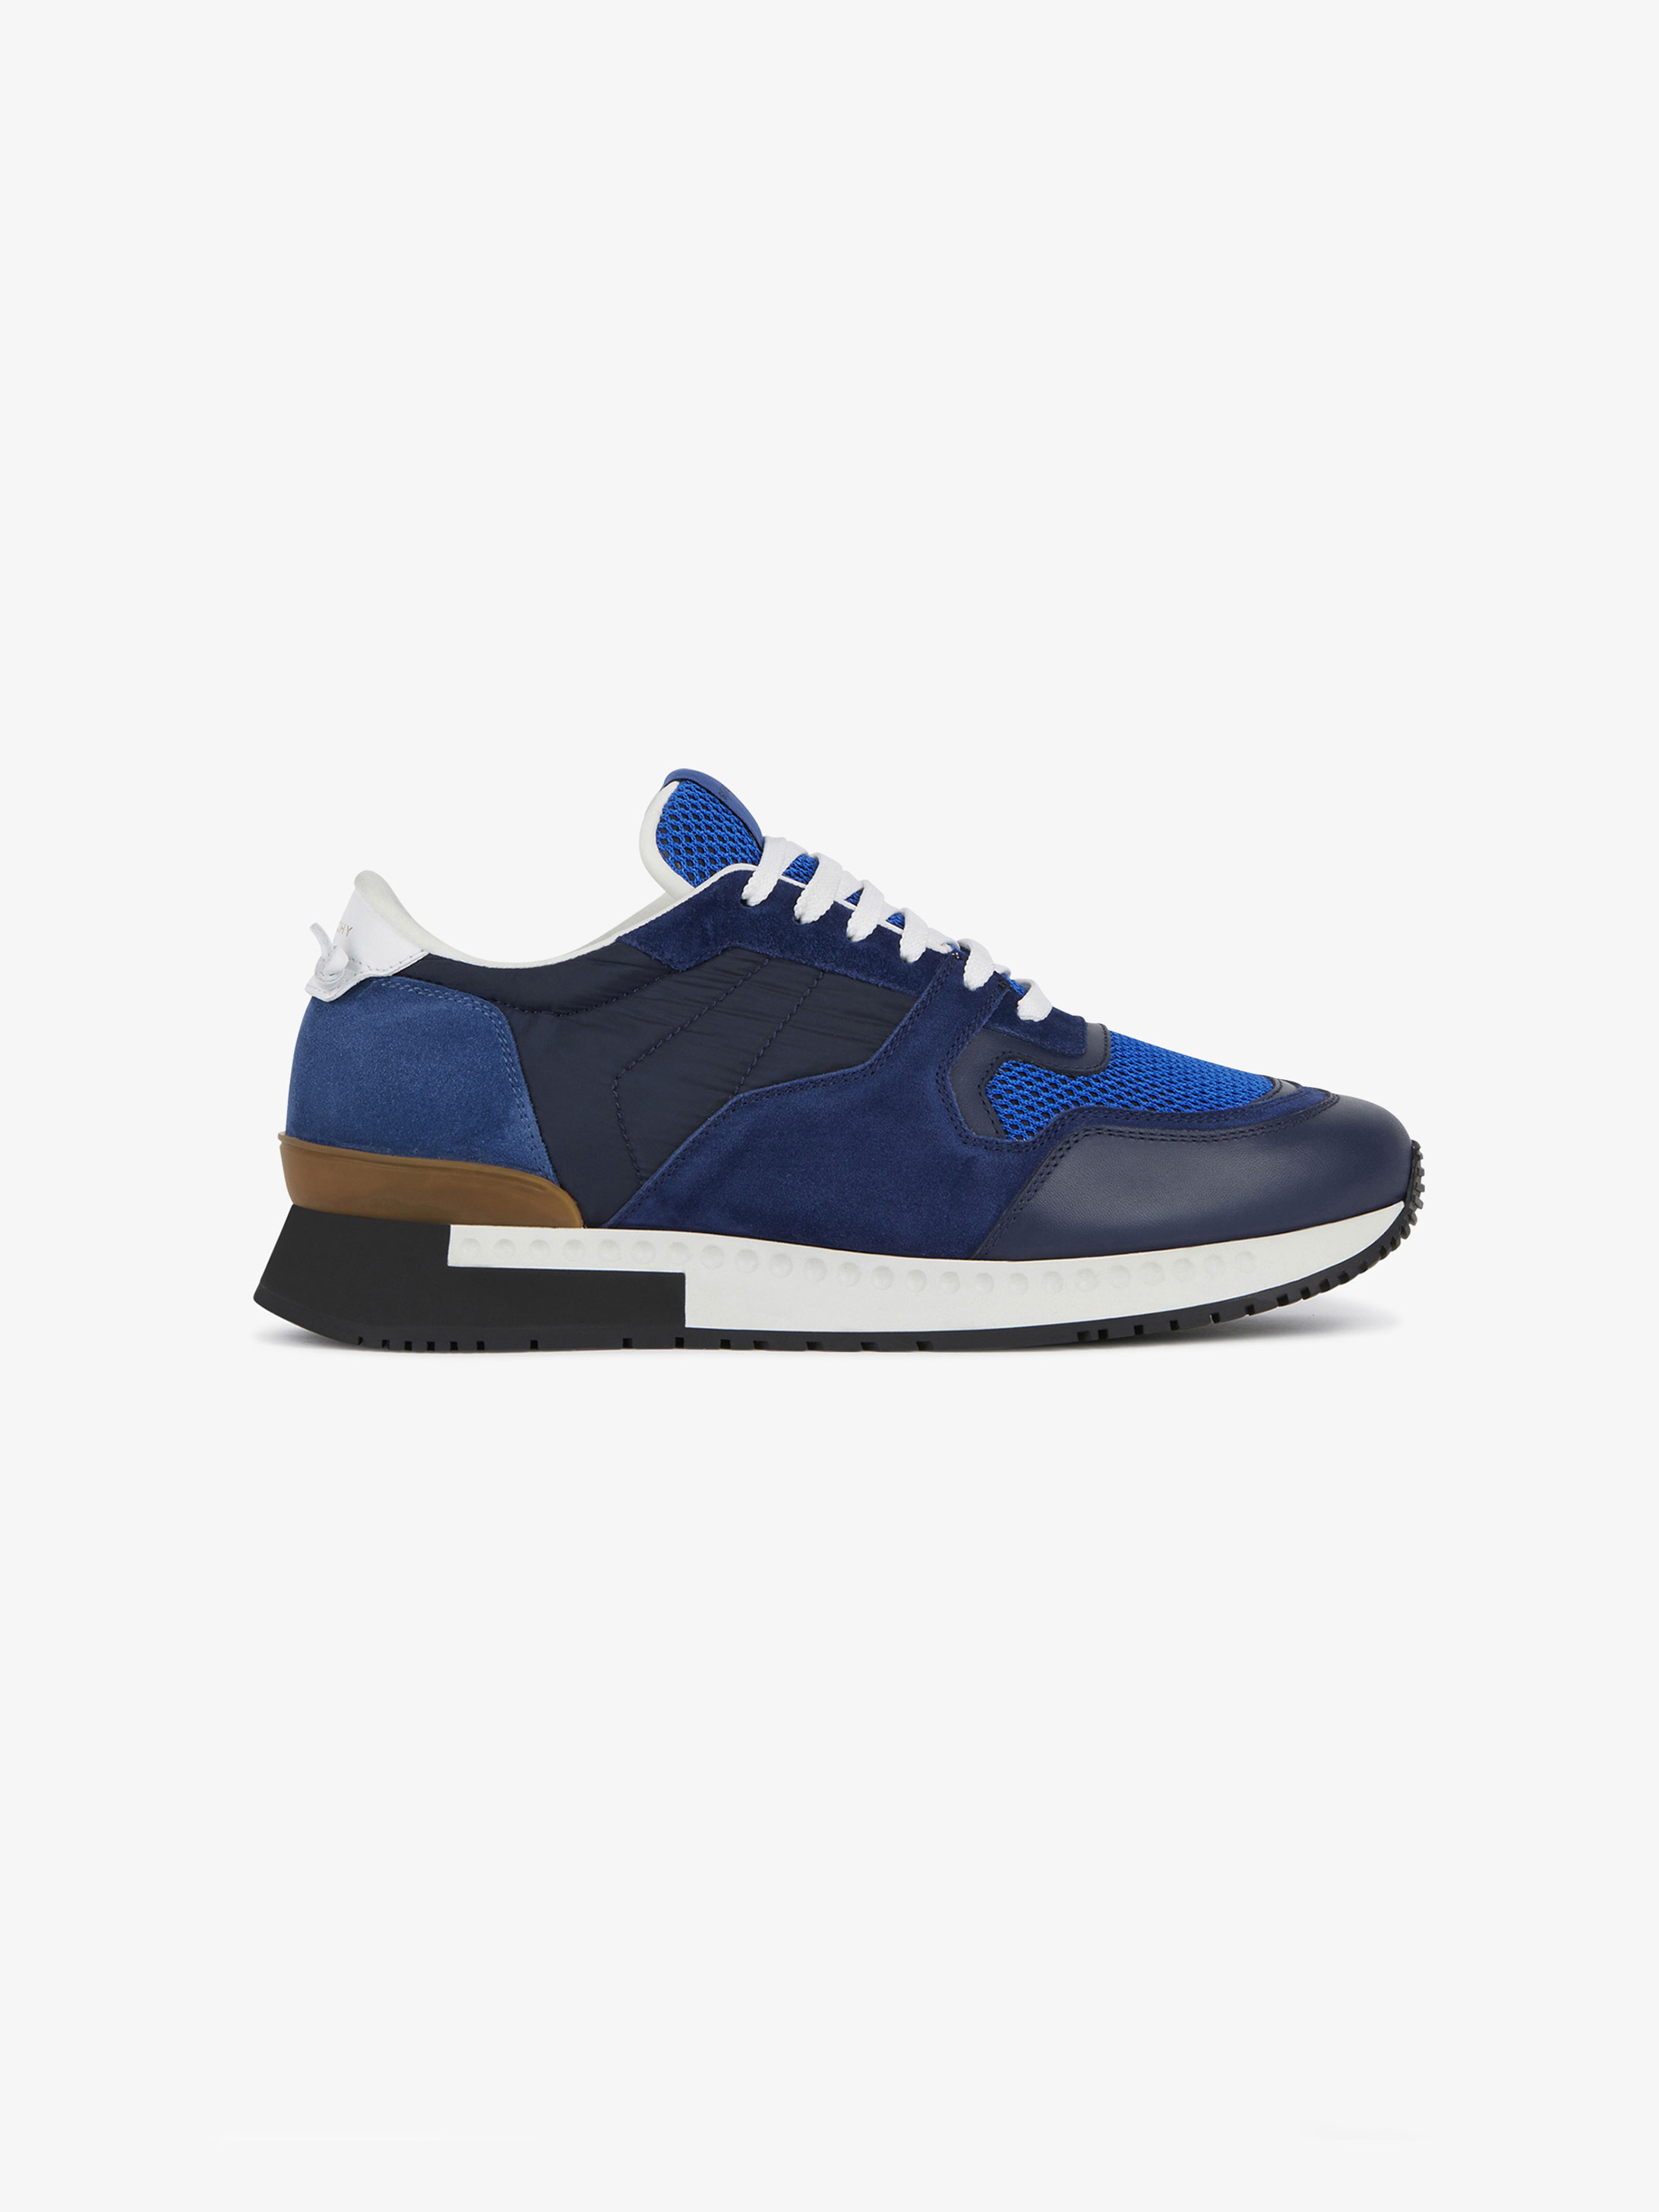 Givenchy Runner sneakers in suede and